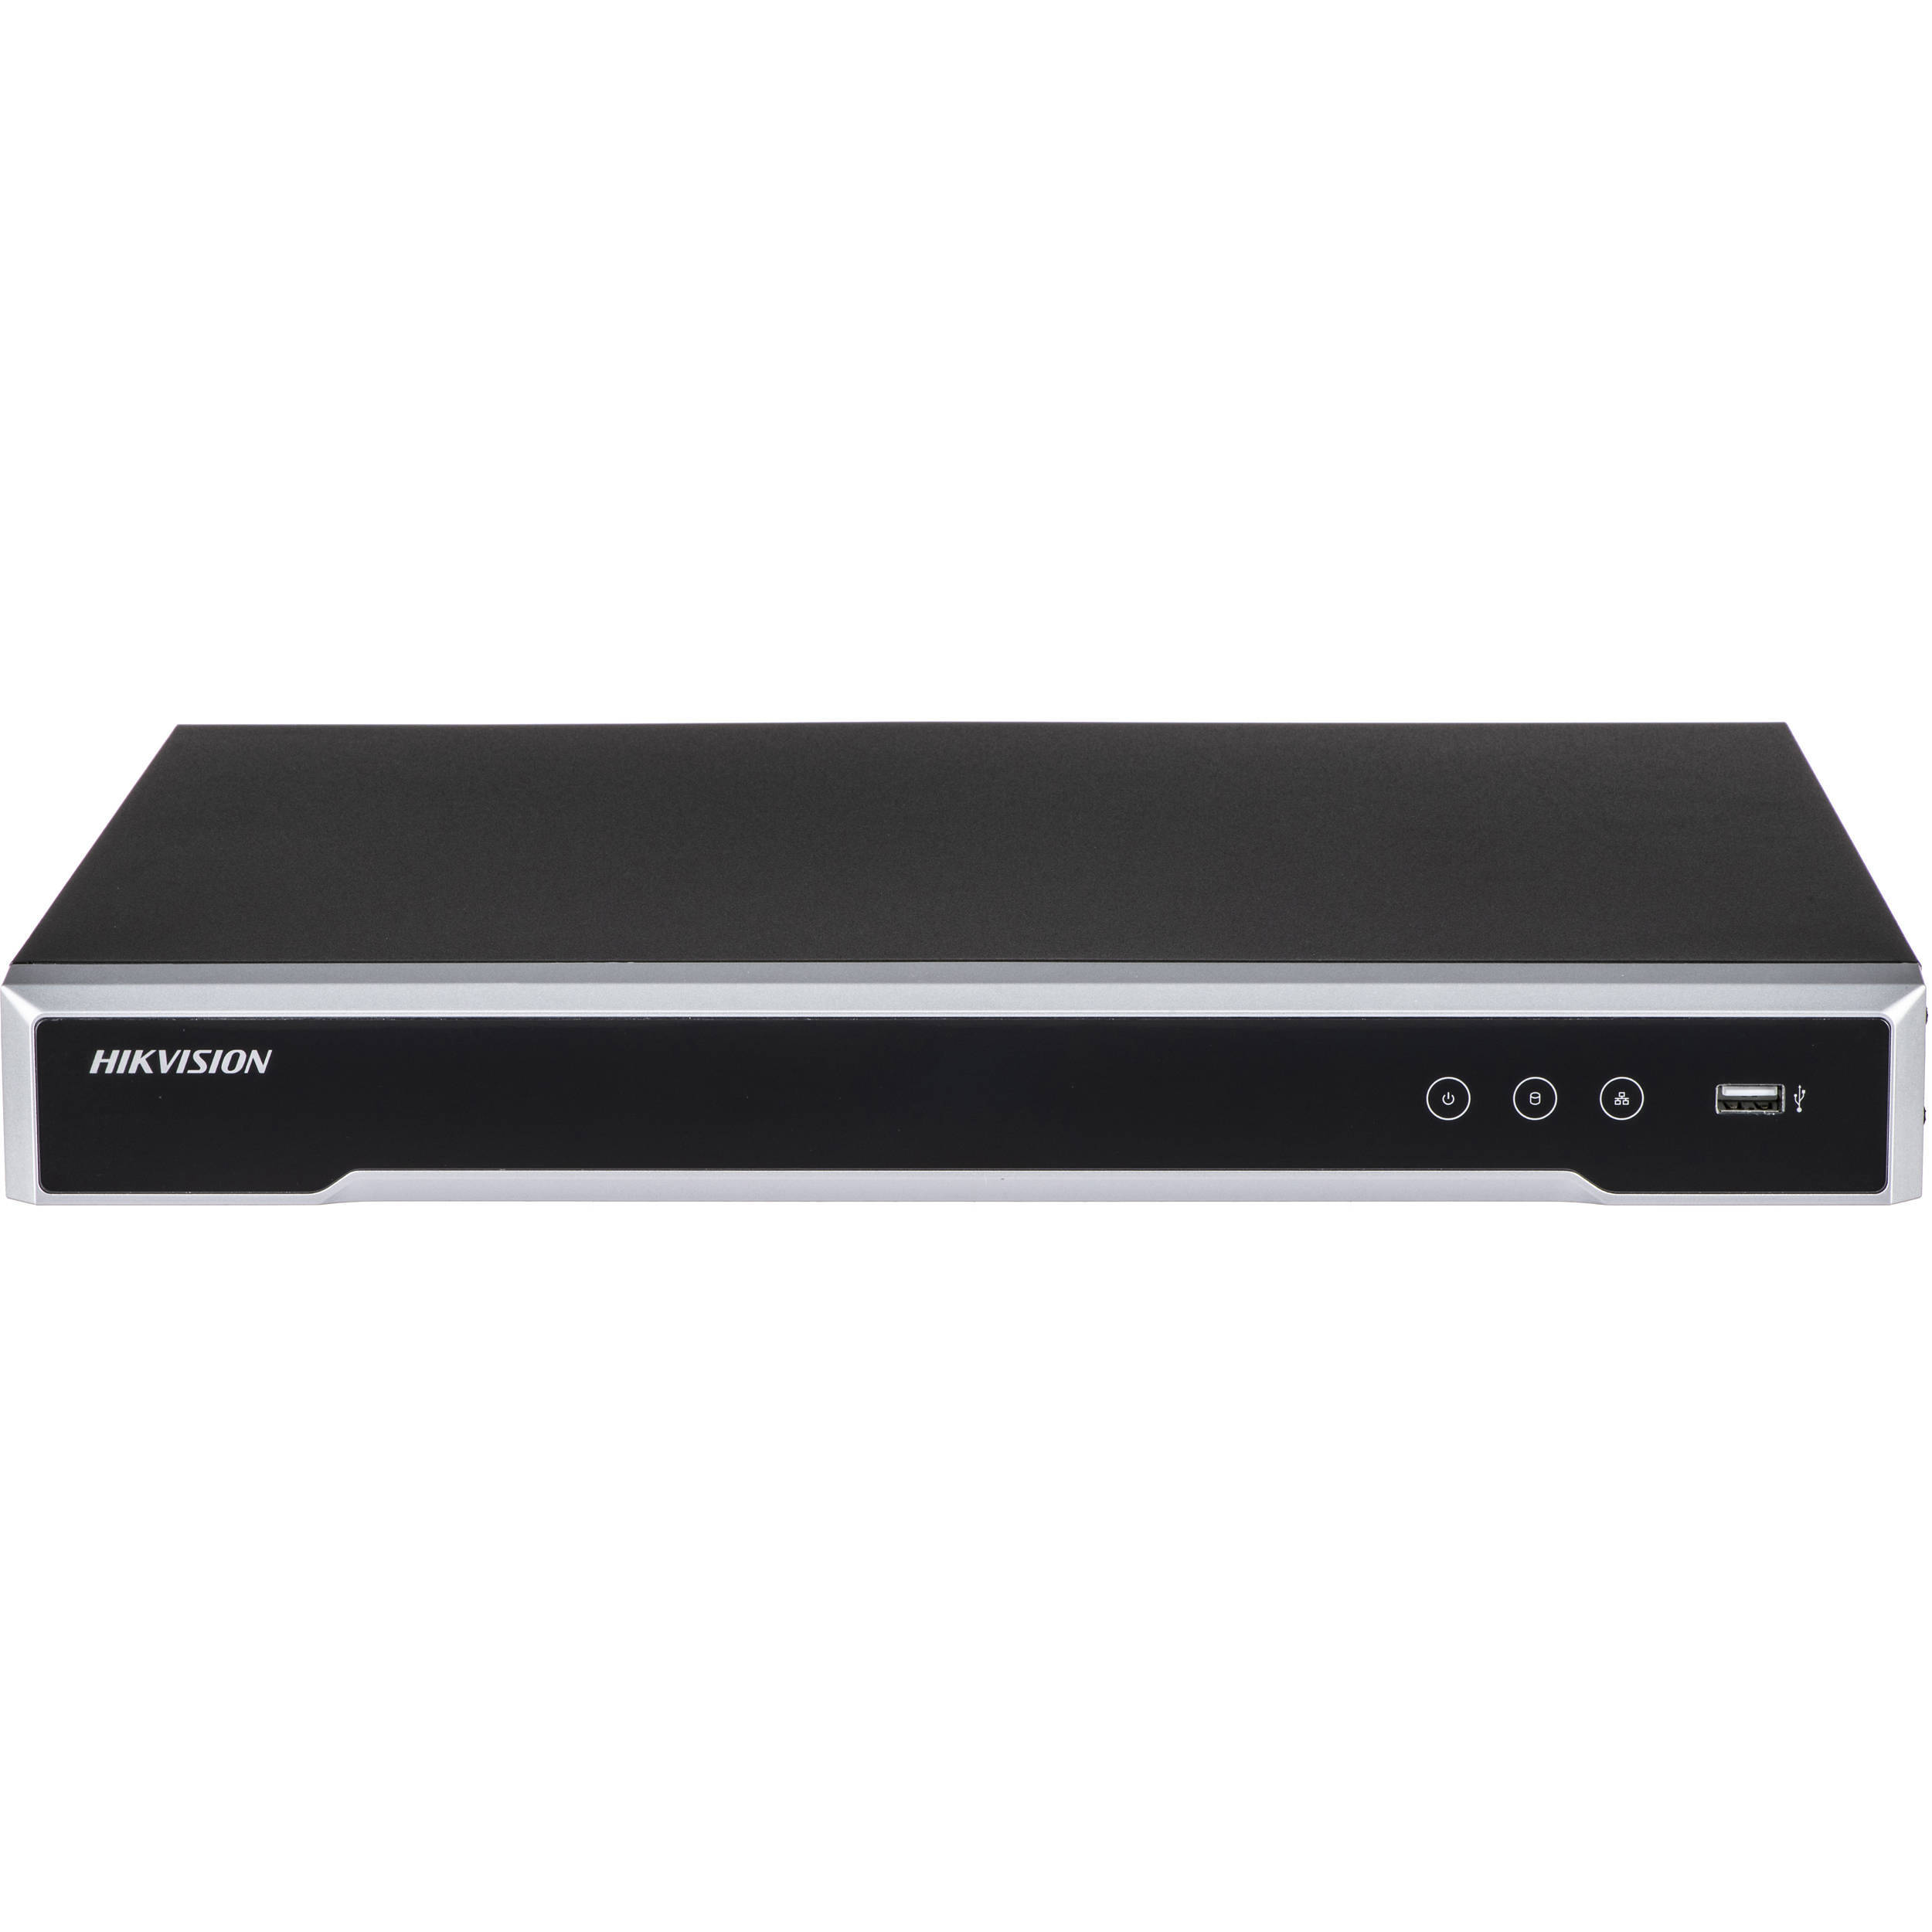 Hikvision DS-7608NI-I2/8P P Series 8-Channel DS-7608NI-I2/8P-8TB